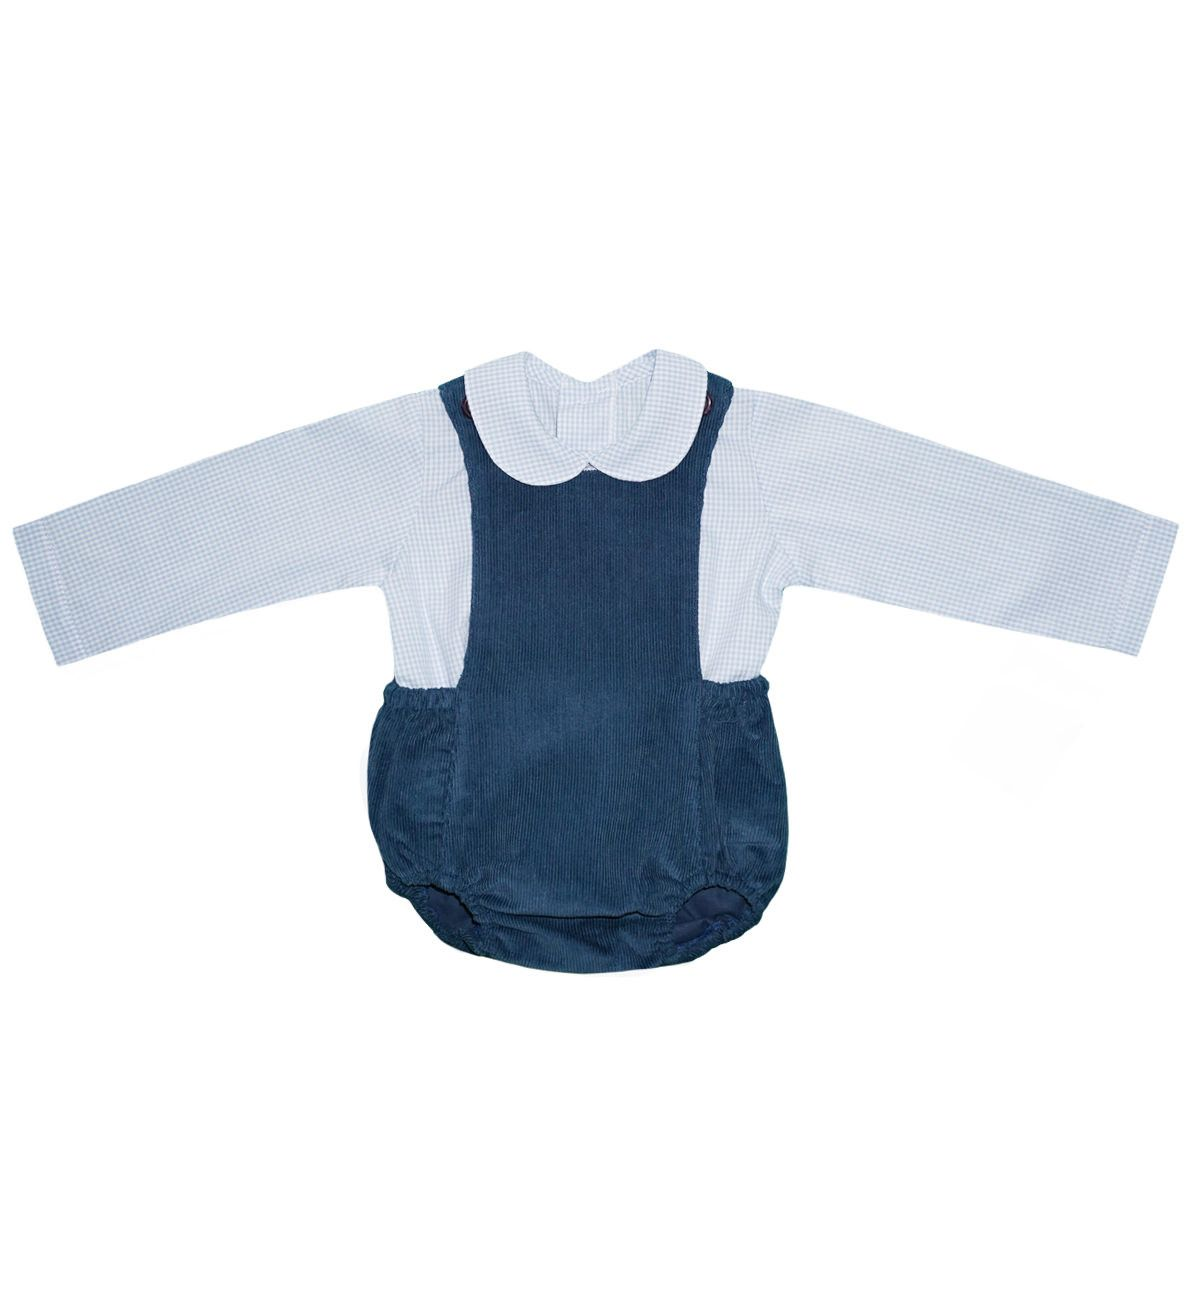 Spanish baby clothes | baby Dungaree | Two piece shorts dungaree set |babymaC  - 1